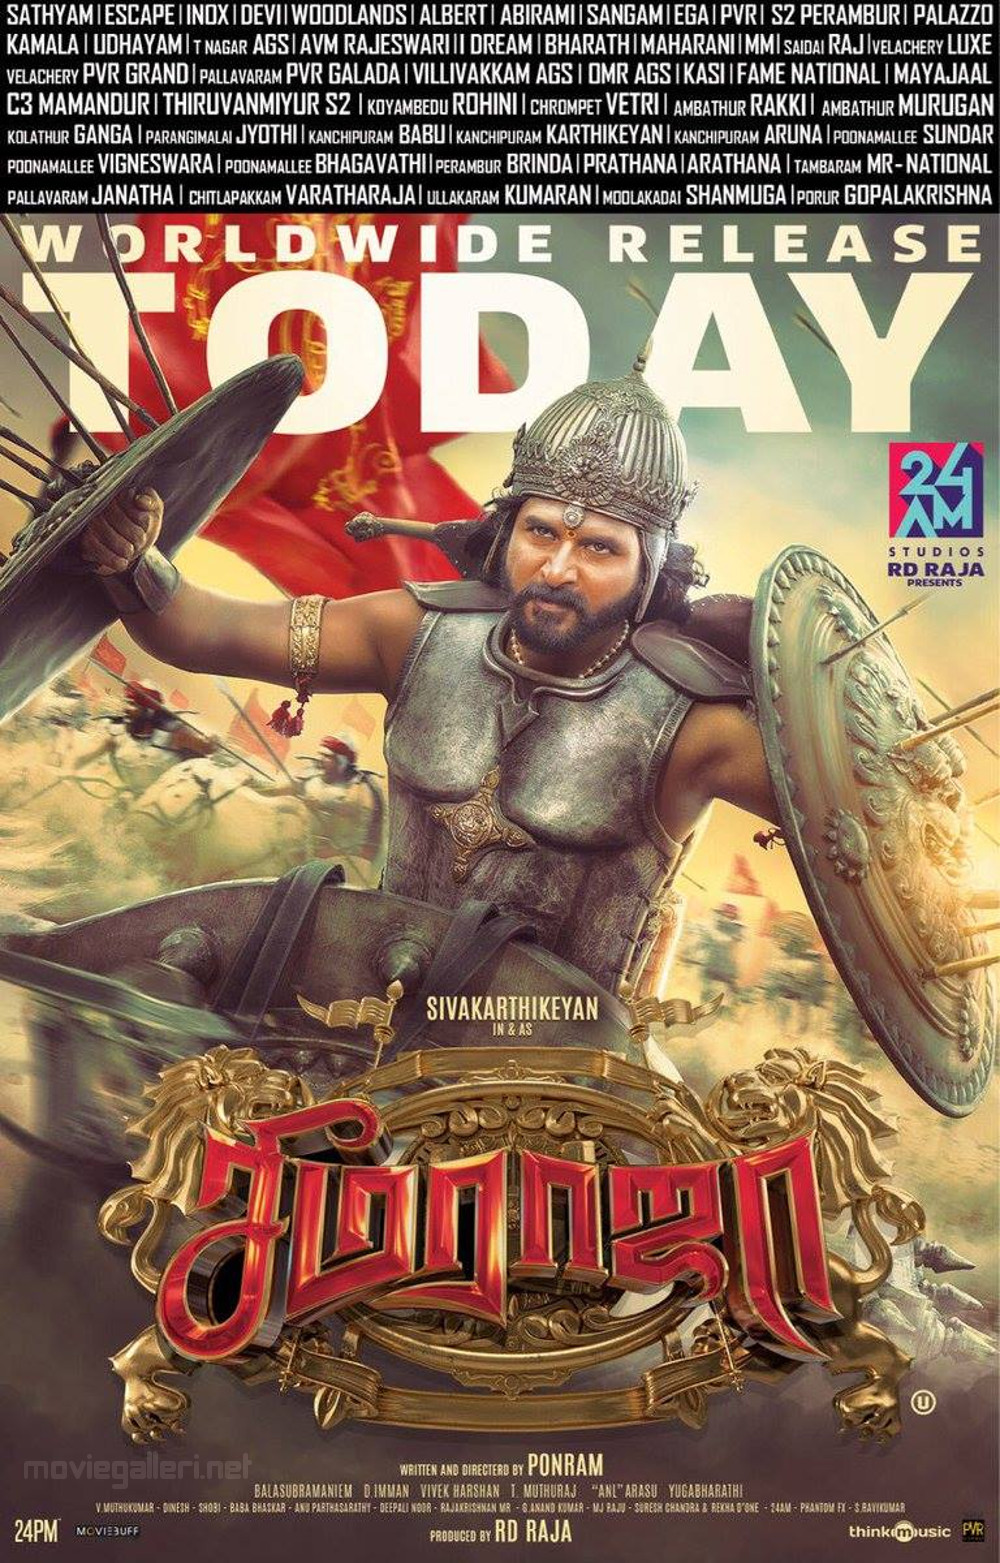 Sivakarthikeyan Seema Raja Movie Release Today Posters